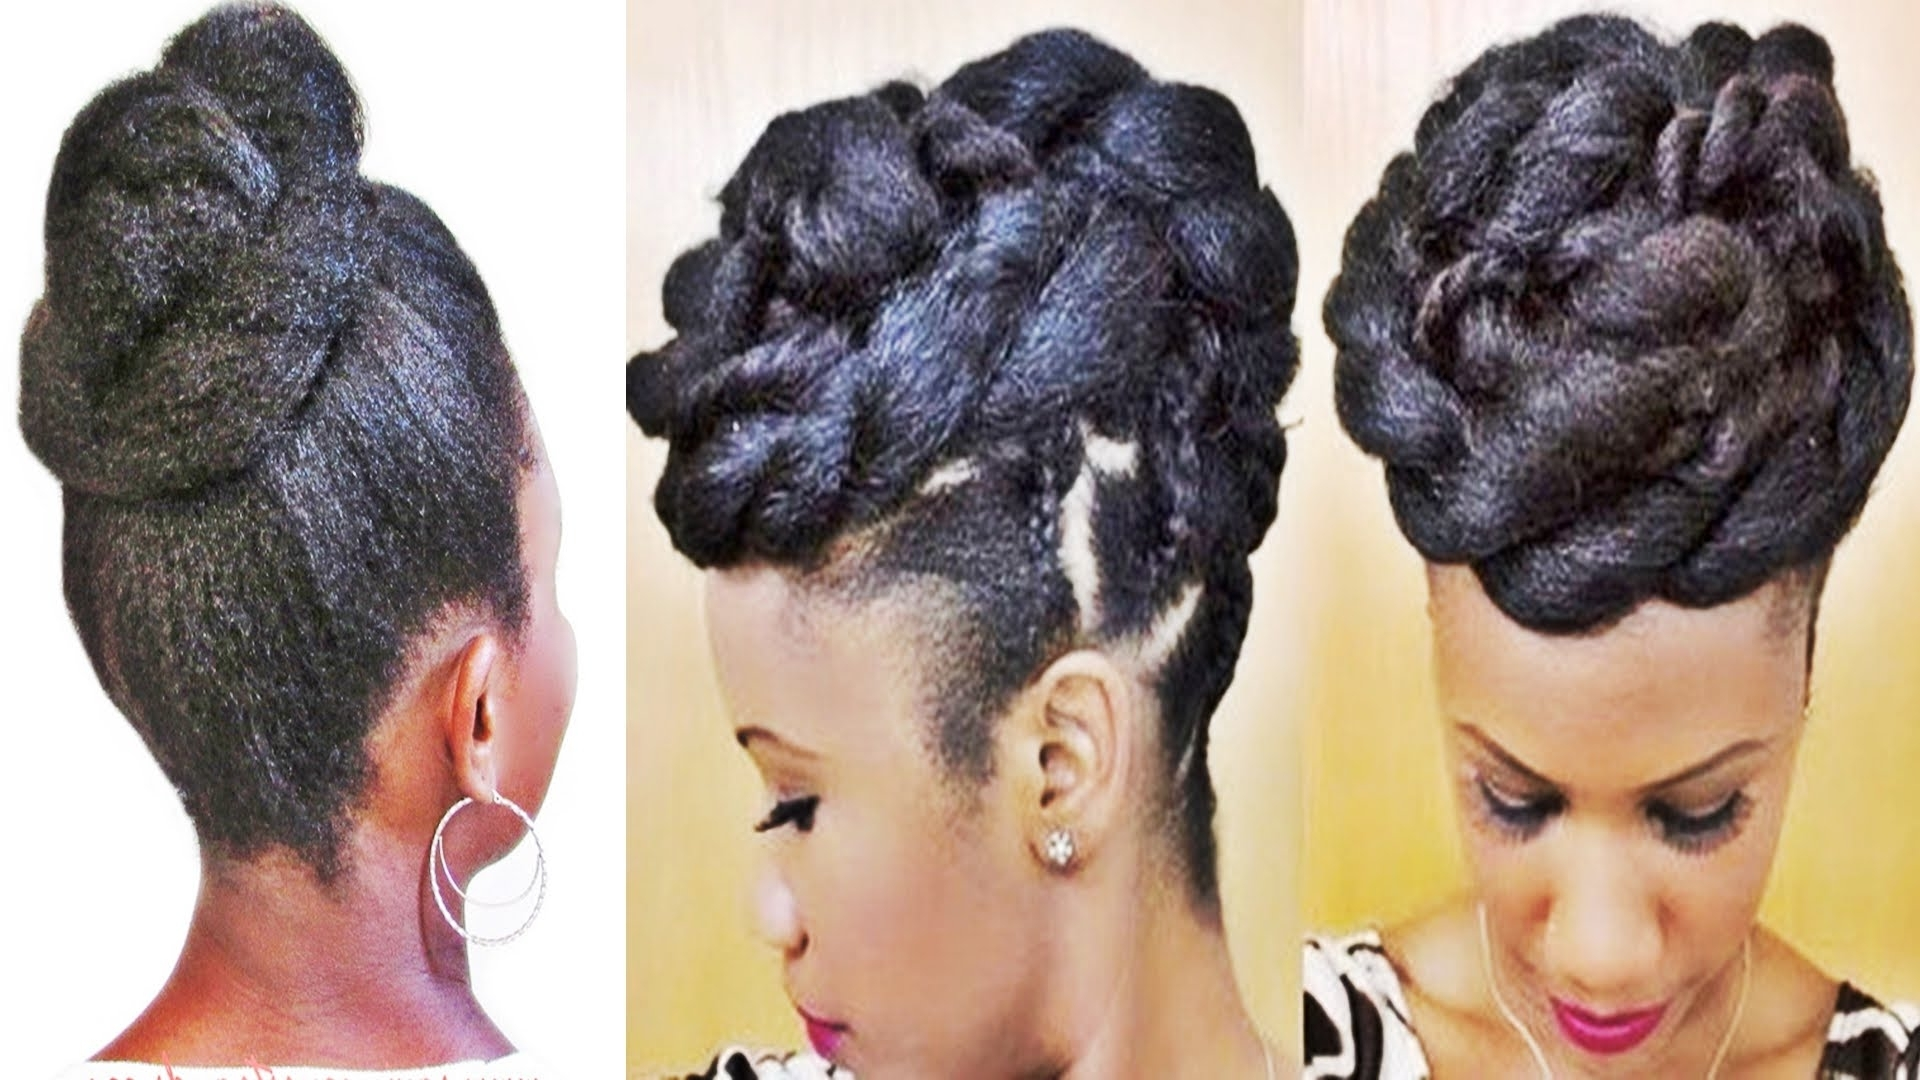 Widely Used Braided Goddess Updo Hairstyles For Braids And Twists Updo Hairstyle For Black Women – Youtube (View 7 of 15)